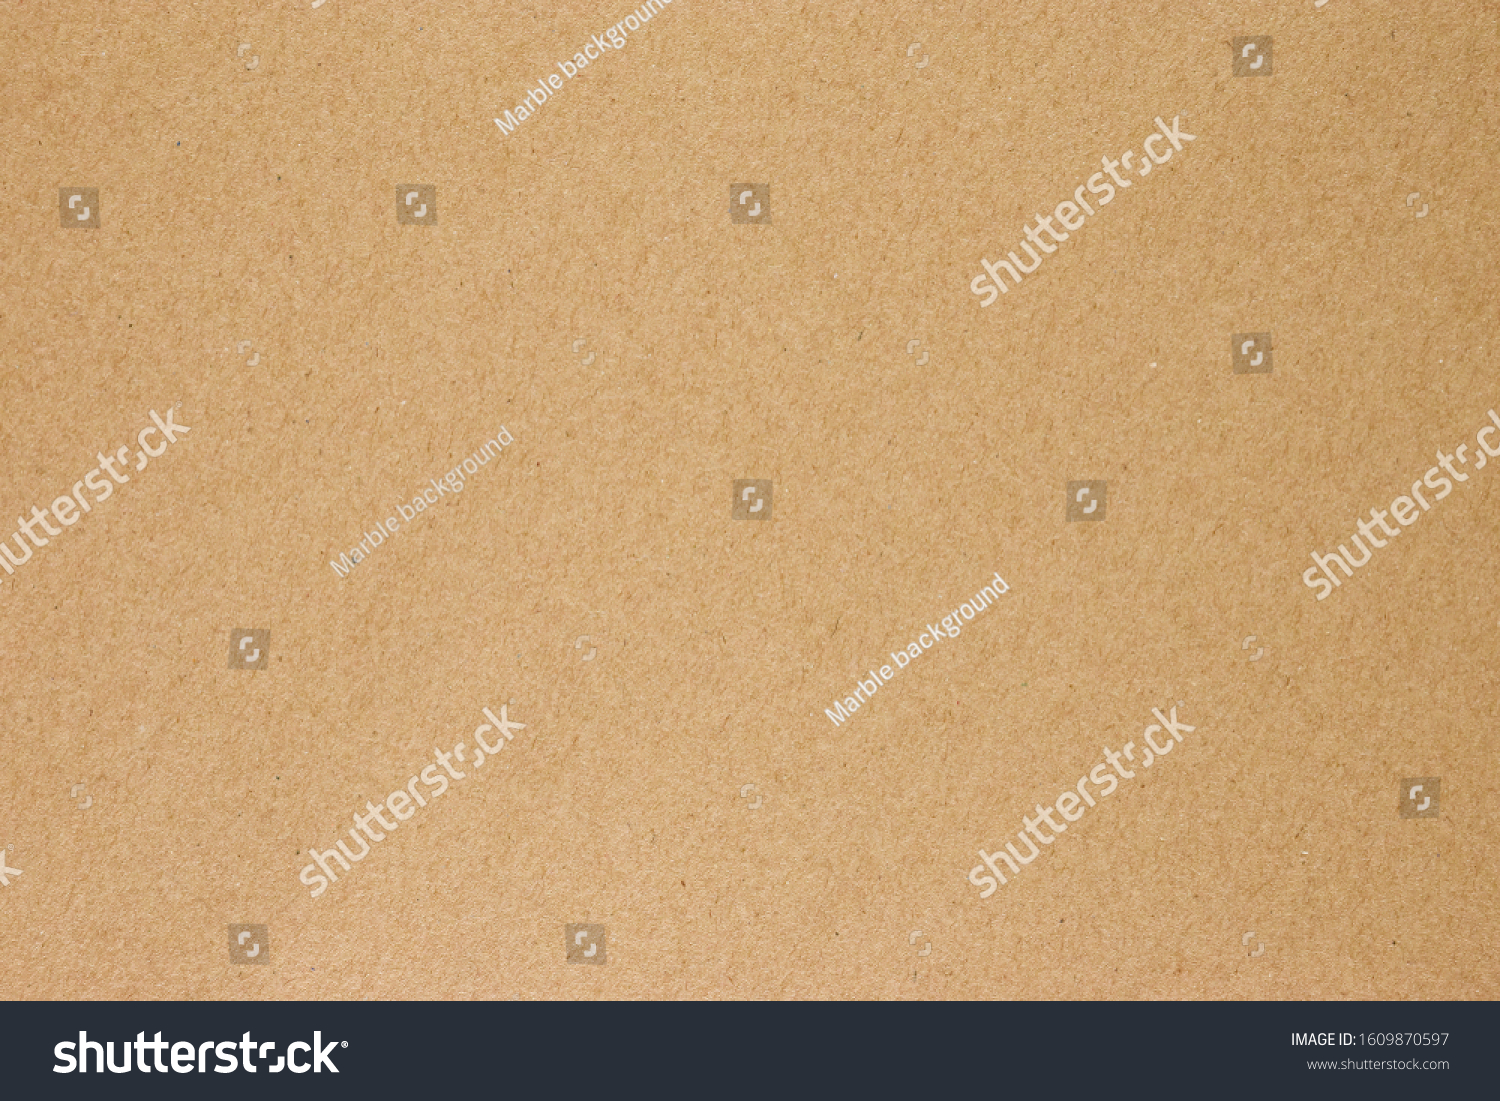 Paper texture brown sheet background #1609870597